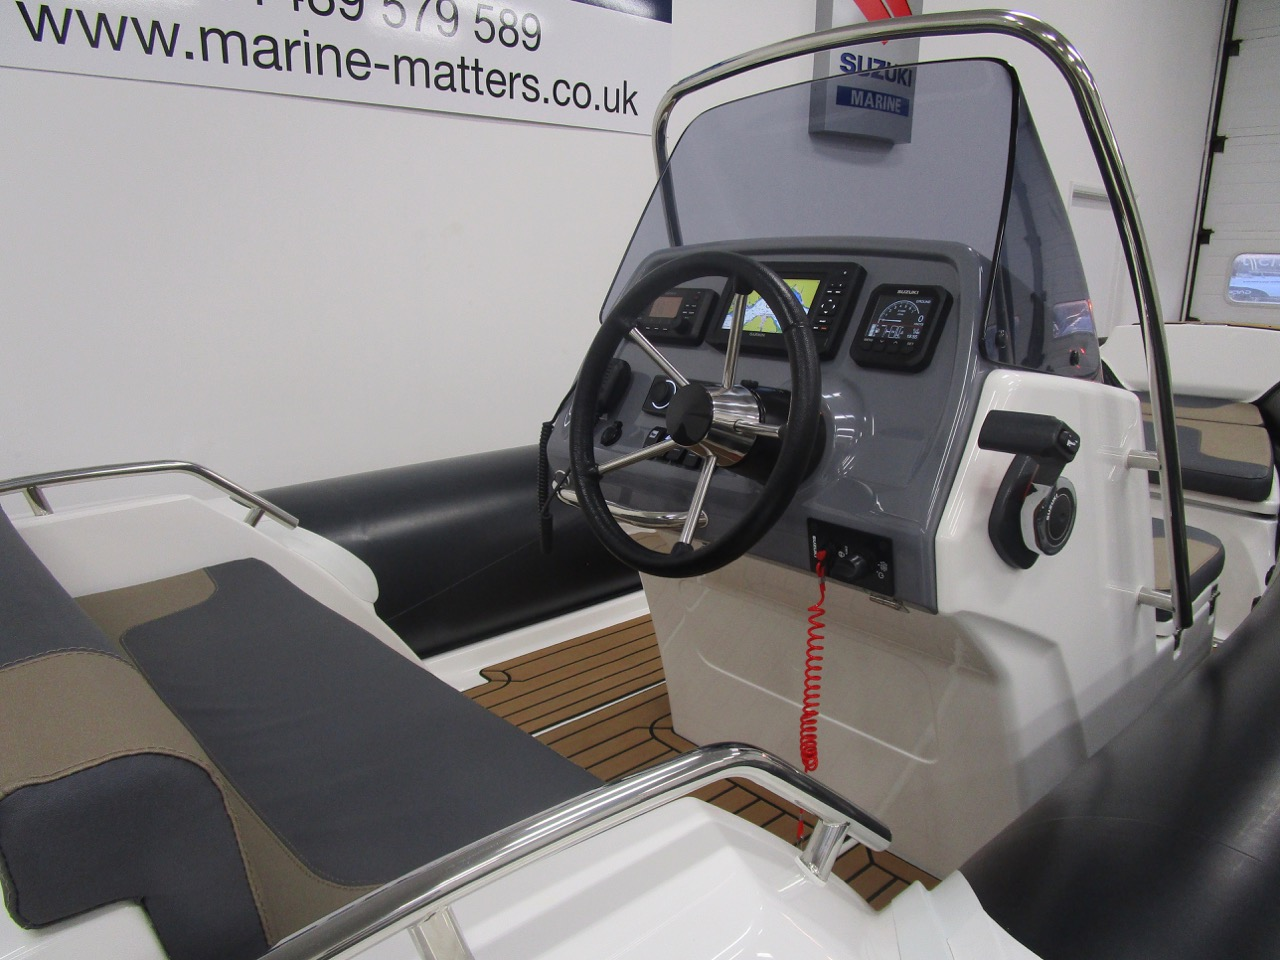 GRAND G500 RIB helm seat and console